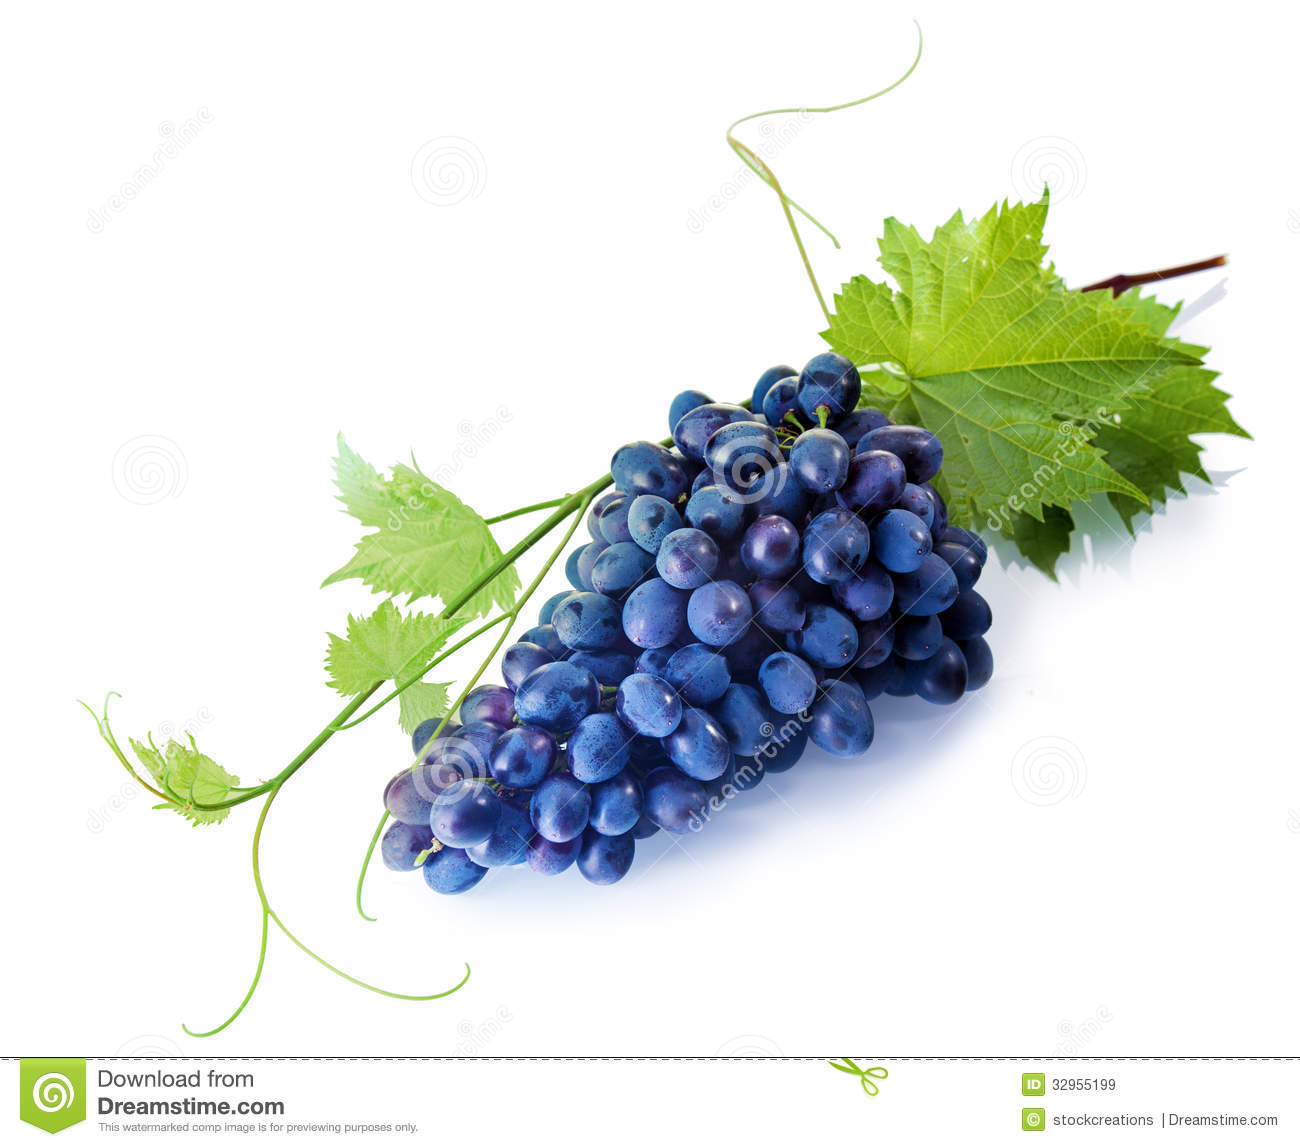 Mr vine bing images - Table grapes vs wine grapes ...